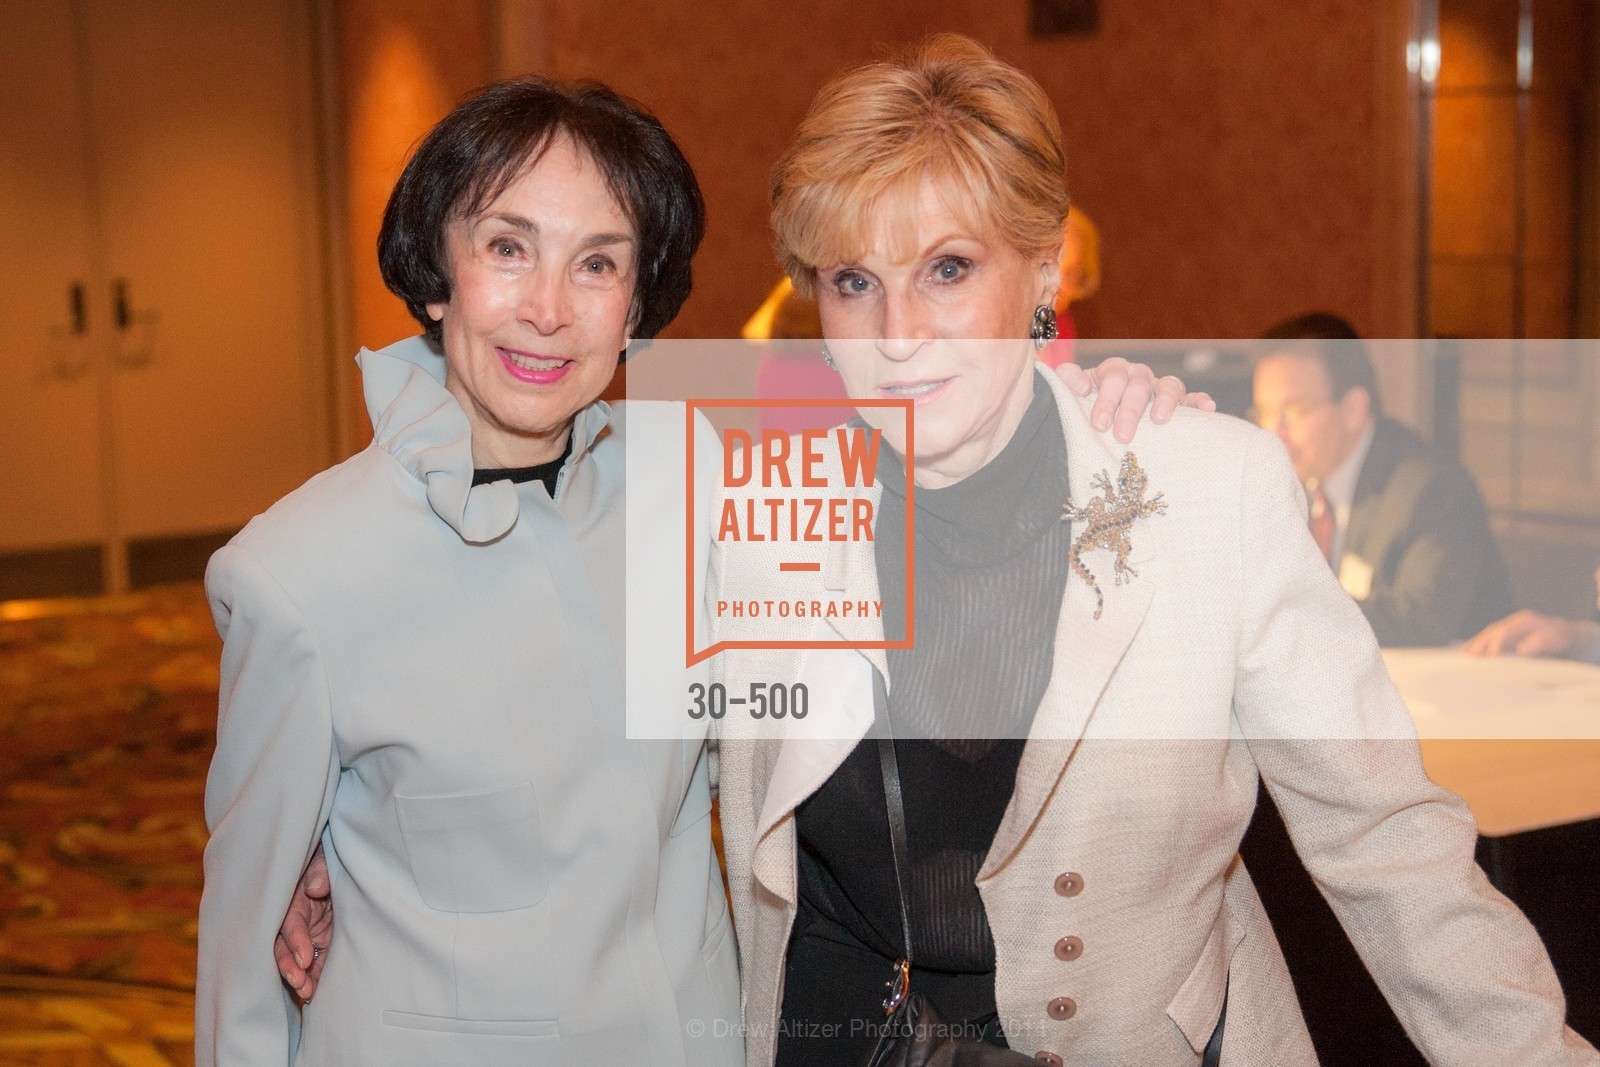 Merla Zellerbach, Lois Lehrman, Compassion & Choices Luncheon, US. US, April 4th, 2014,Drew Altizer, Drew Altizer Photography, full-service agency, private events, San Francisco photographer, photographer california